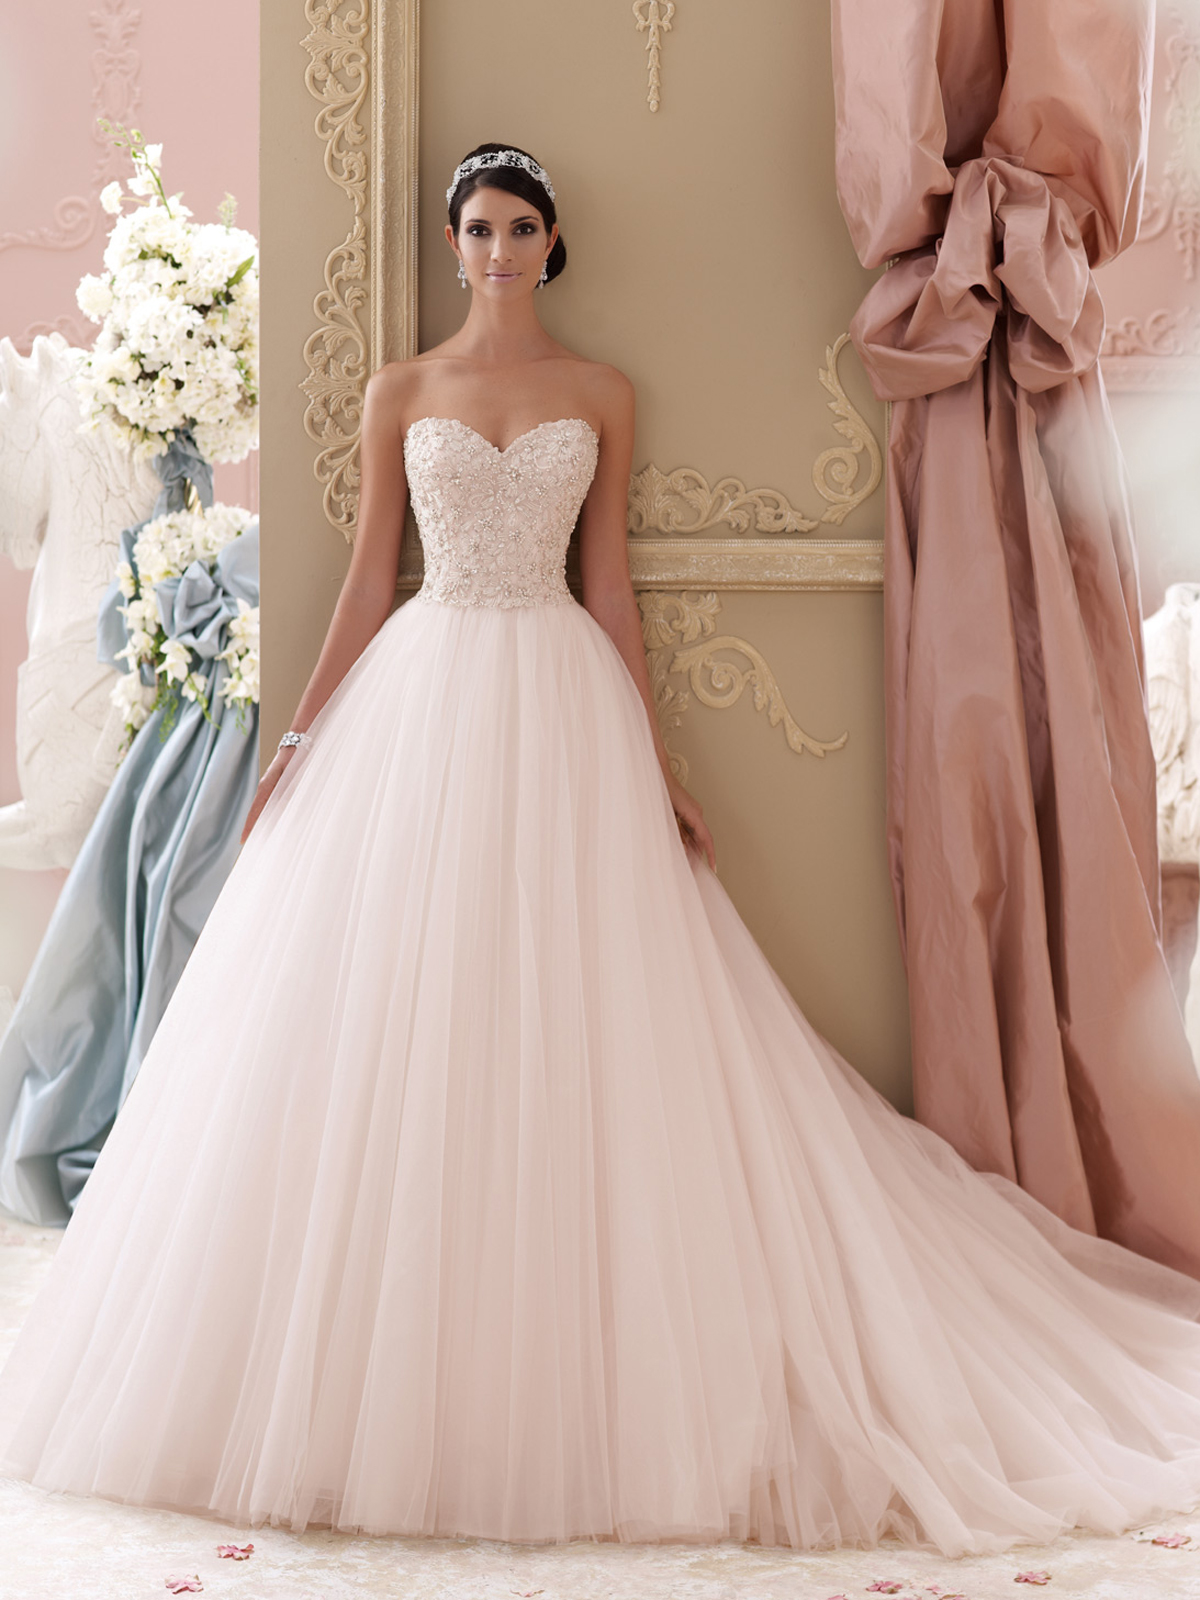 Your guide to the trendiest bridal gowns in 2015 wedding dresses image 5 junglespirit Gallery